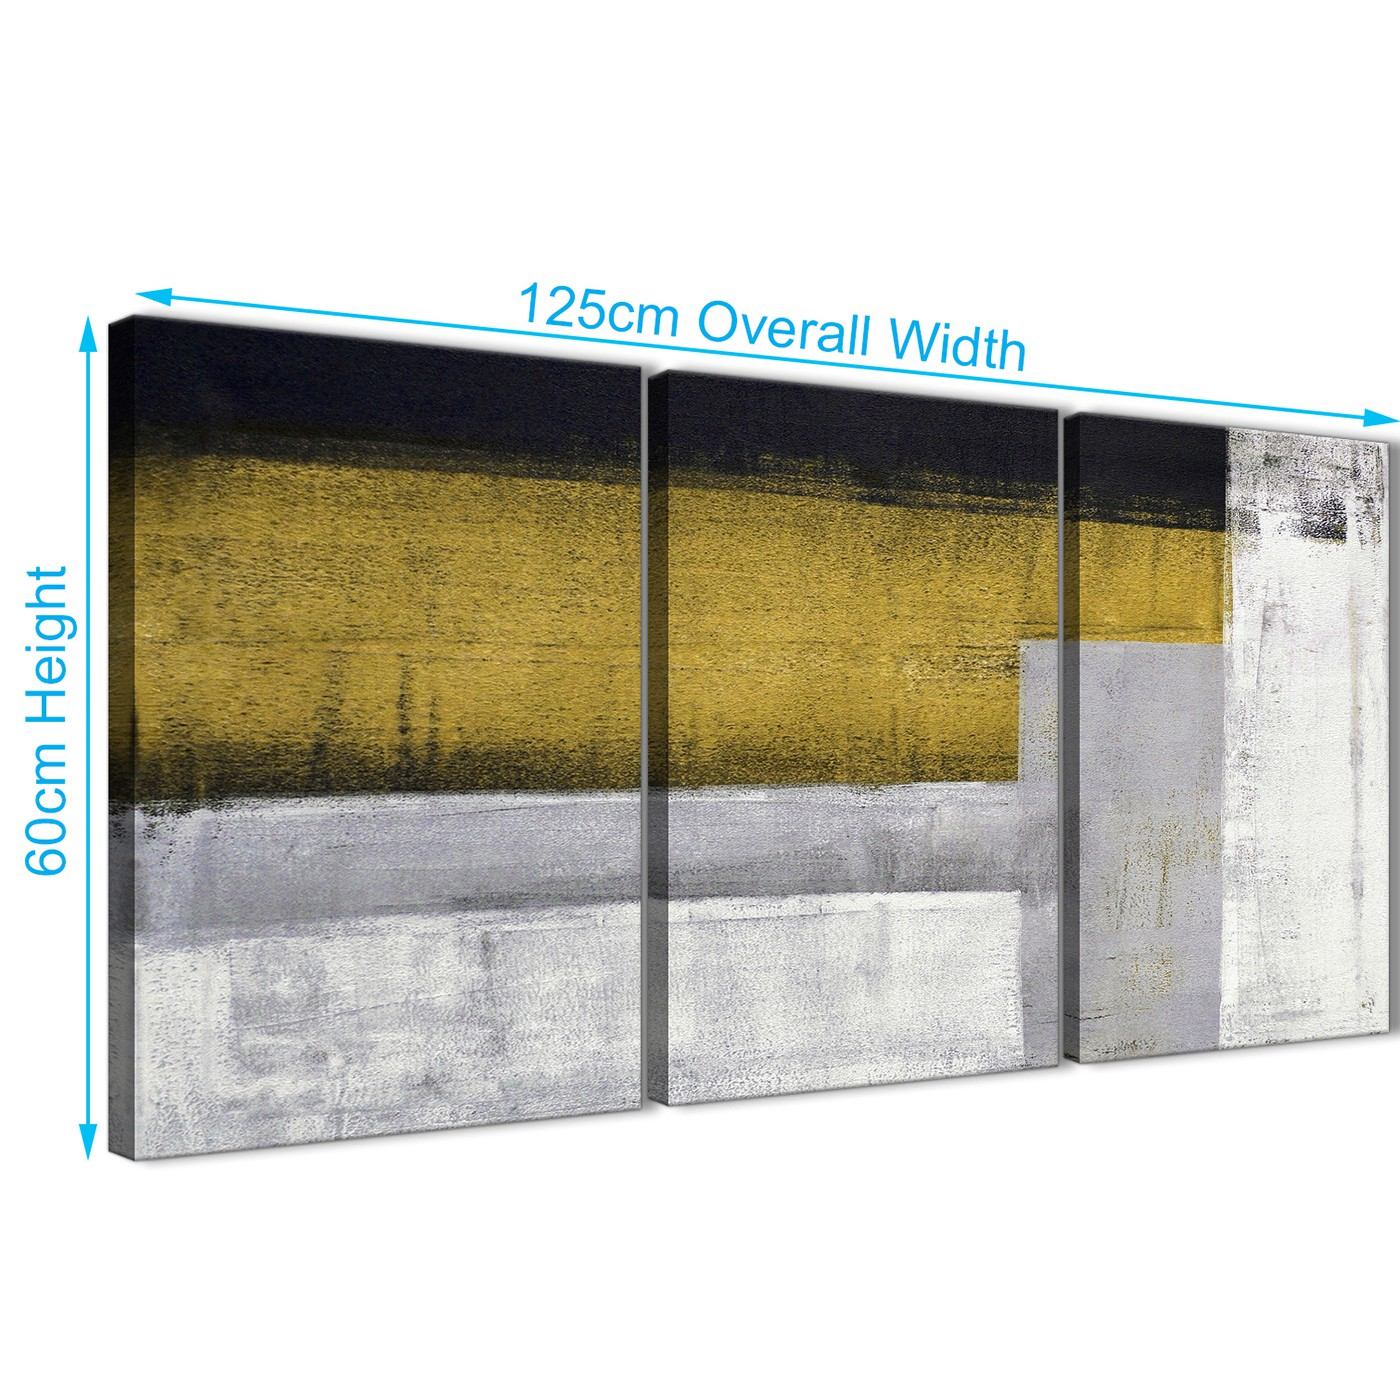 ... Quality 3 Piece Mustard Yellow Grey Painting Office Canvas Wall Art  Decor - Abstract 3425 - Display Gallery Item 3; 3 Piece Mustard Yellow Grey  Painting ...